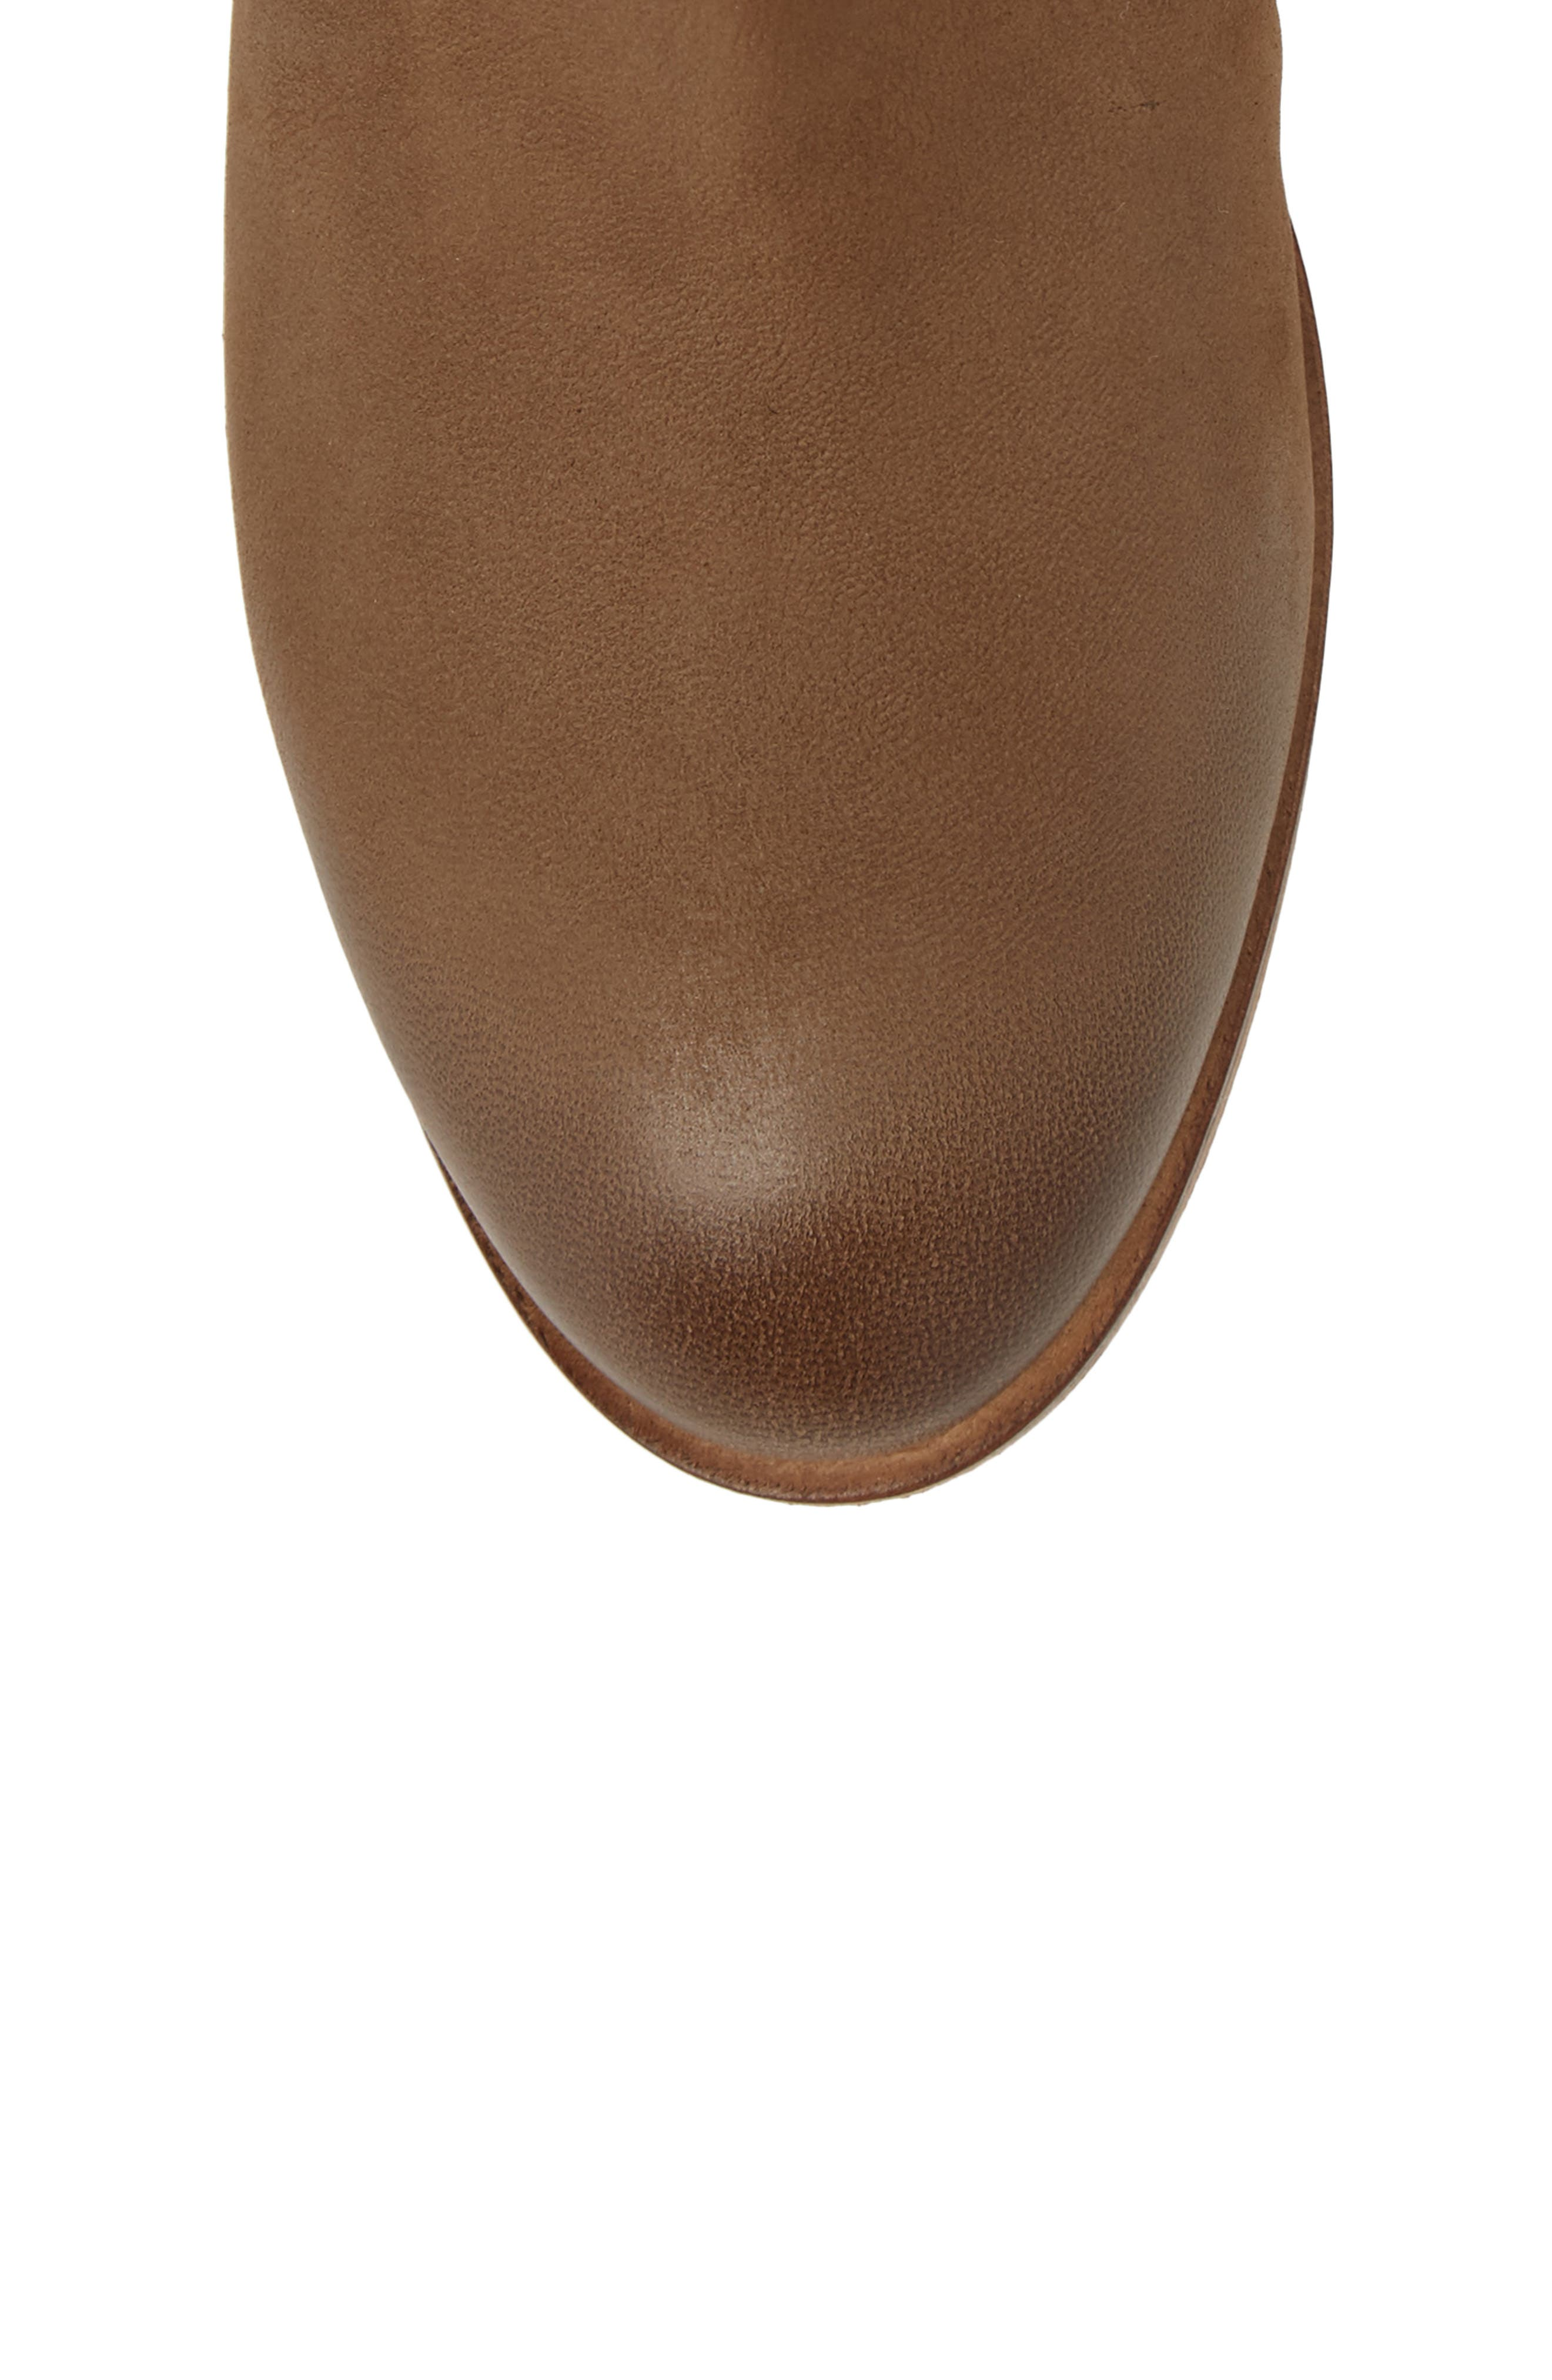 Yuma Bootie,                             Alternate thumbnail 5, color,                             Cognac Washed Nubuck Leather